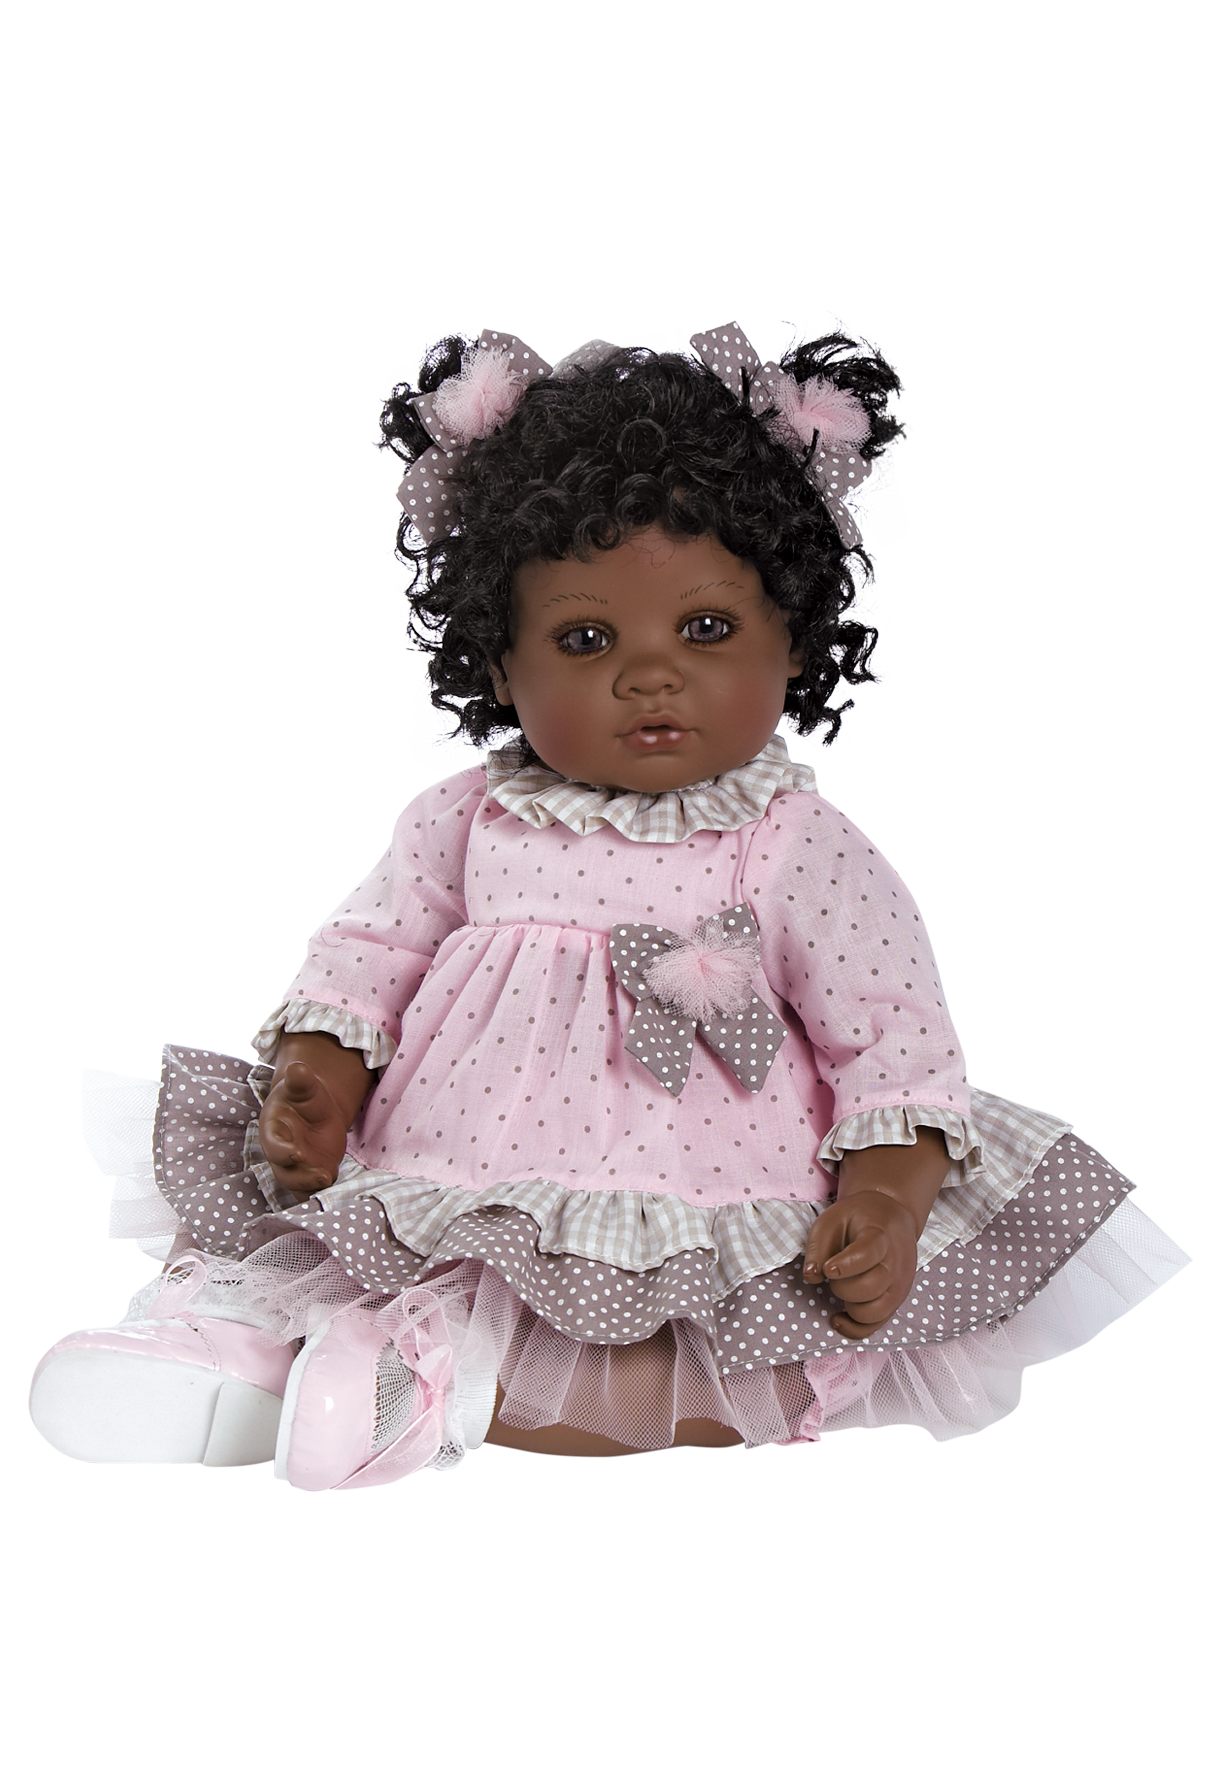 Adora 20 Inch Lifelike Toddler Baby Dolls For Kids Curls Of Love Doll Therapy Toddler Dolls Baby Girl Dolls